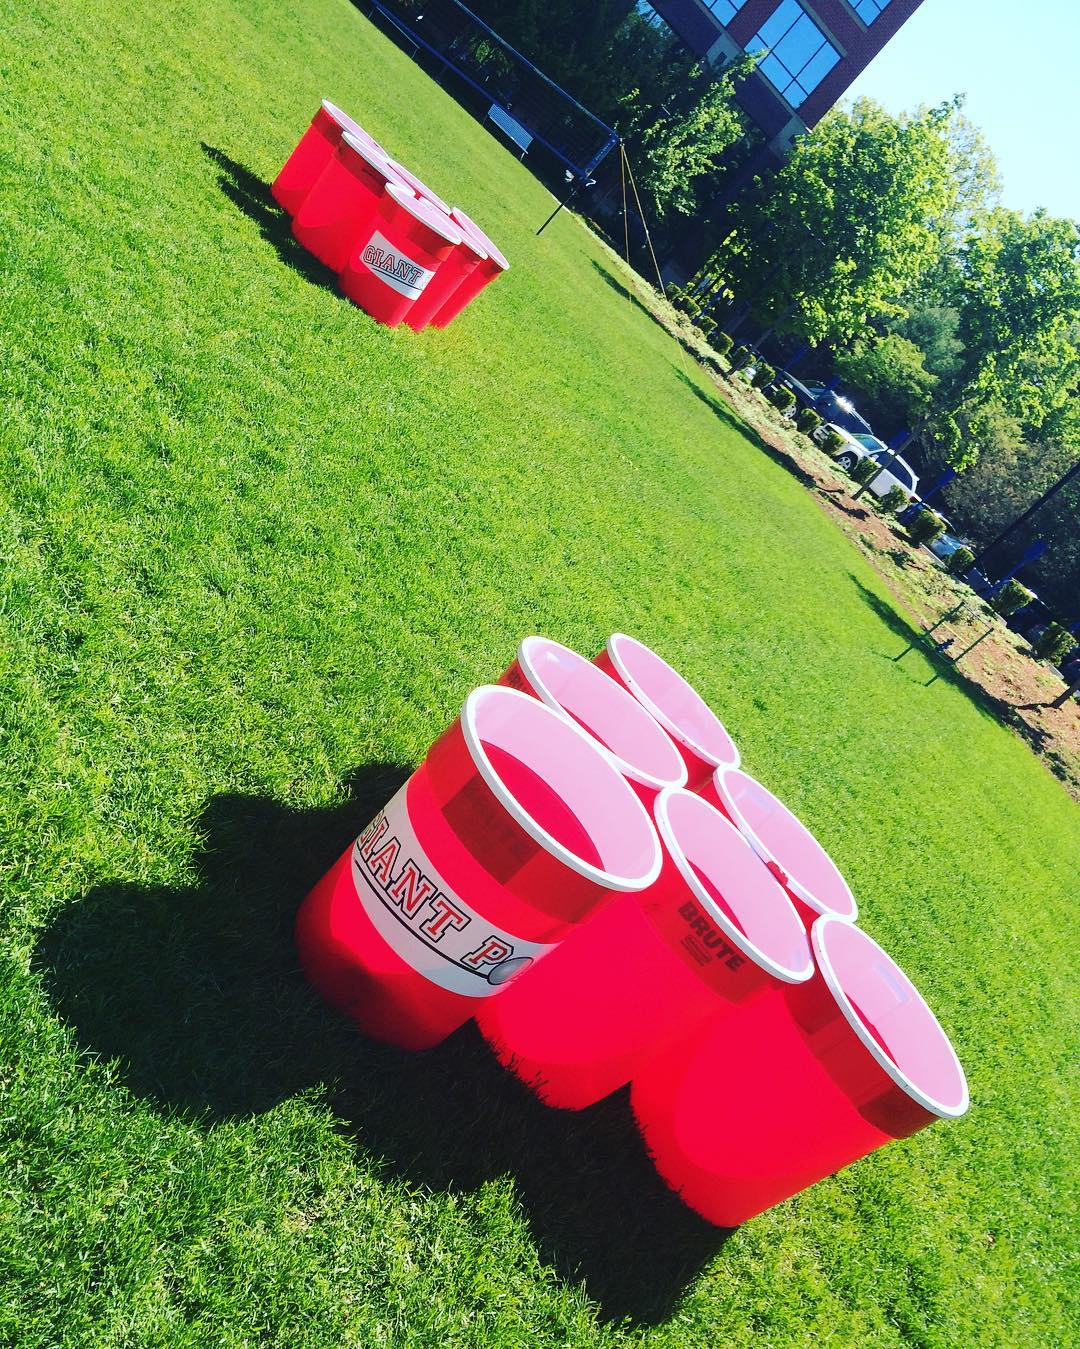 Giant Pong - Graduating is a major milestone! Celebrate it in style and make it a truly monumental event with these 27 fun graduation party games and ideas everyone will love! #graduation #partyideas #graduationideas